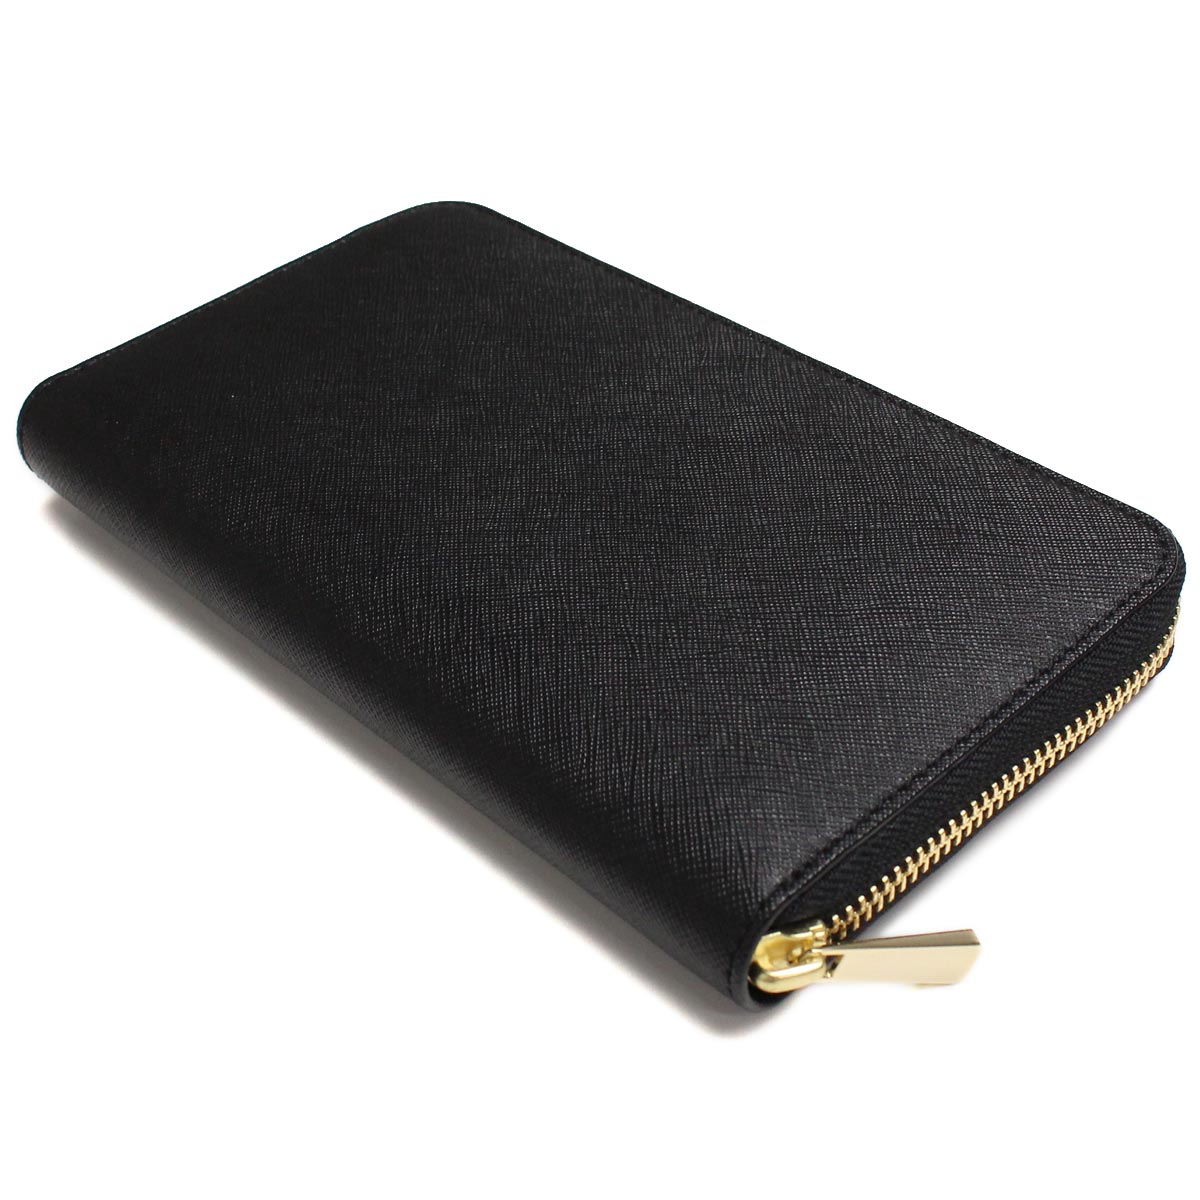 ( tax free ! )Tory Burch (TORY BURCH) ROBINSON ZIP CONTINENTAL long wallet large zip around 11169071-001 BLACK black wallet( taxfree/send by EMS/authentic/A brand new item )